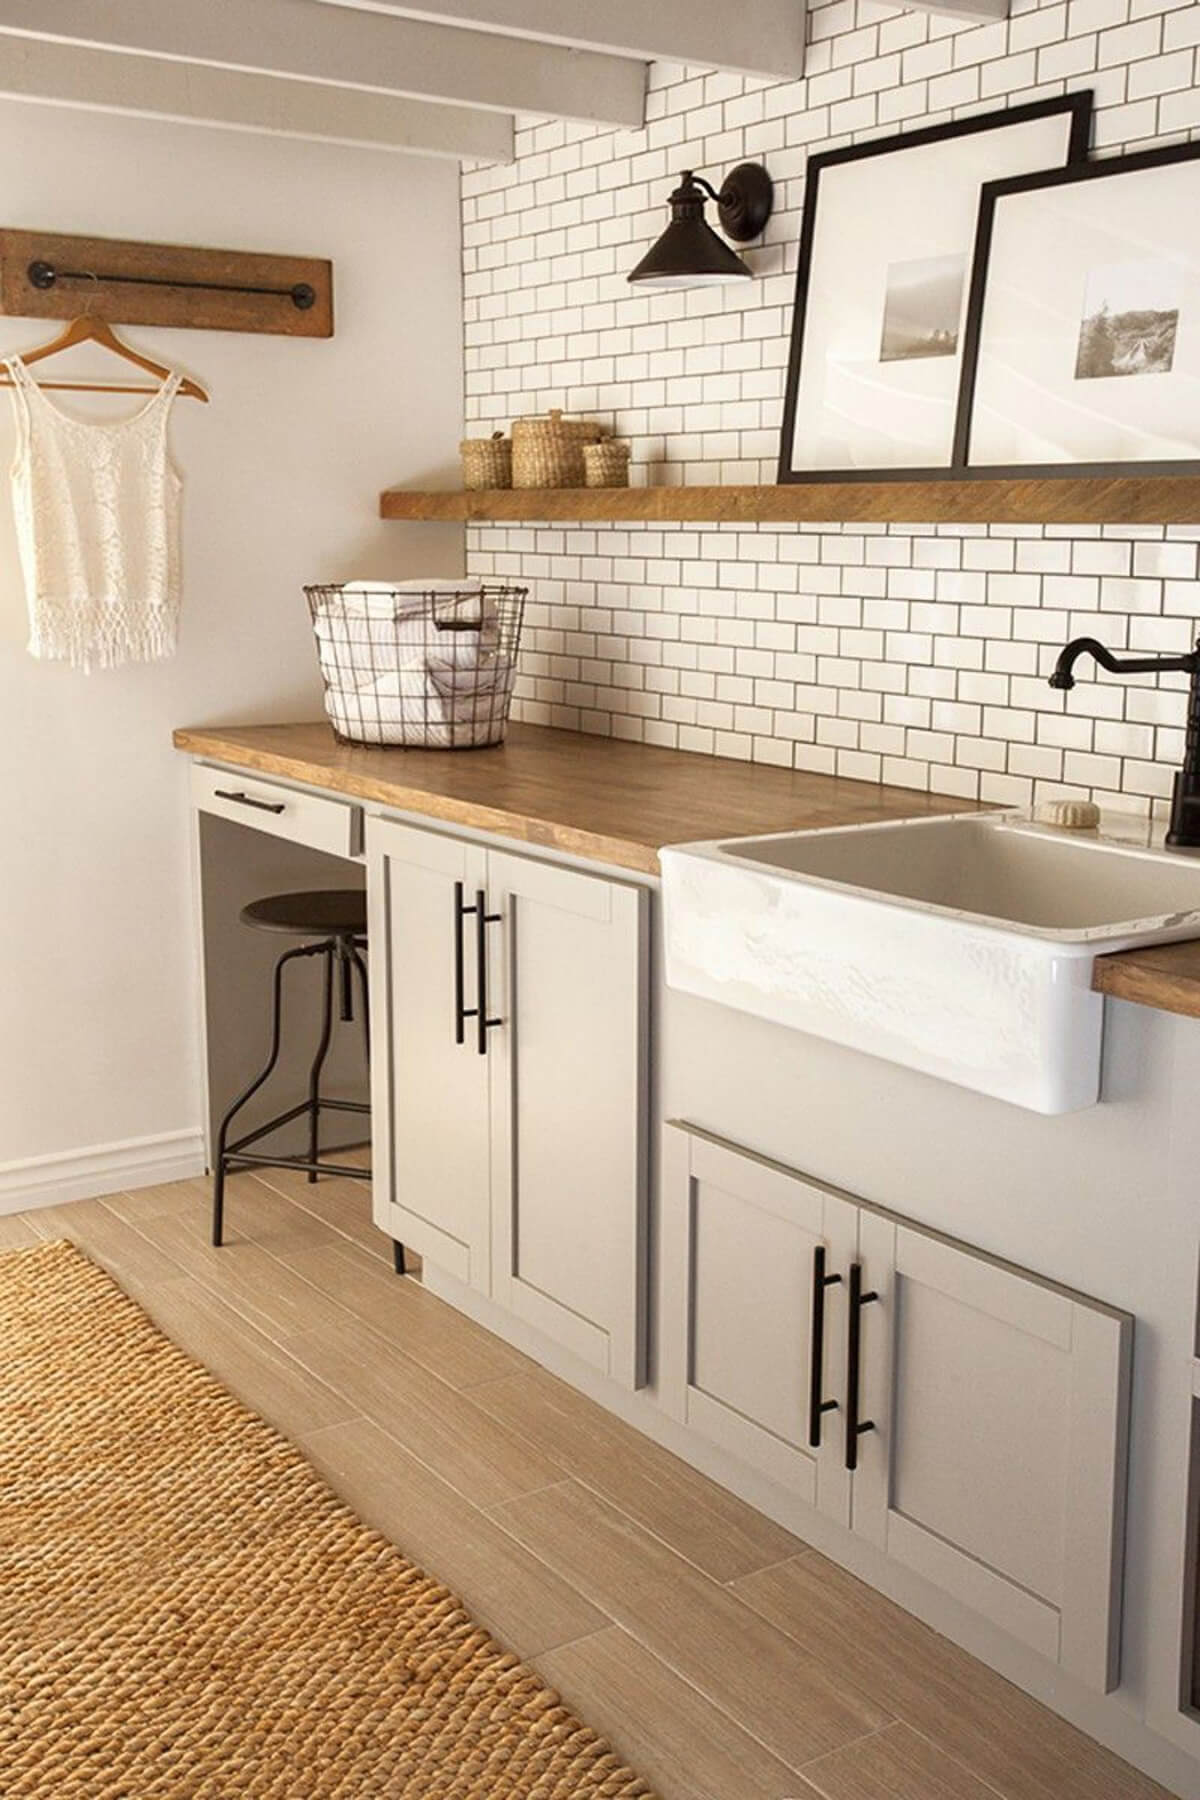 Brilliant Laundry Room Design Idea